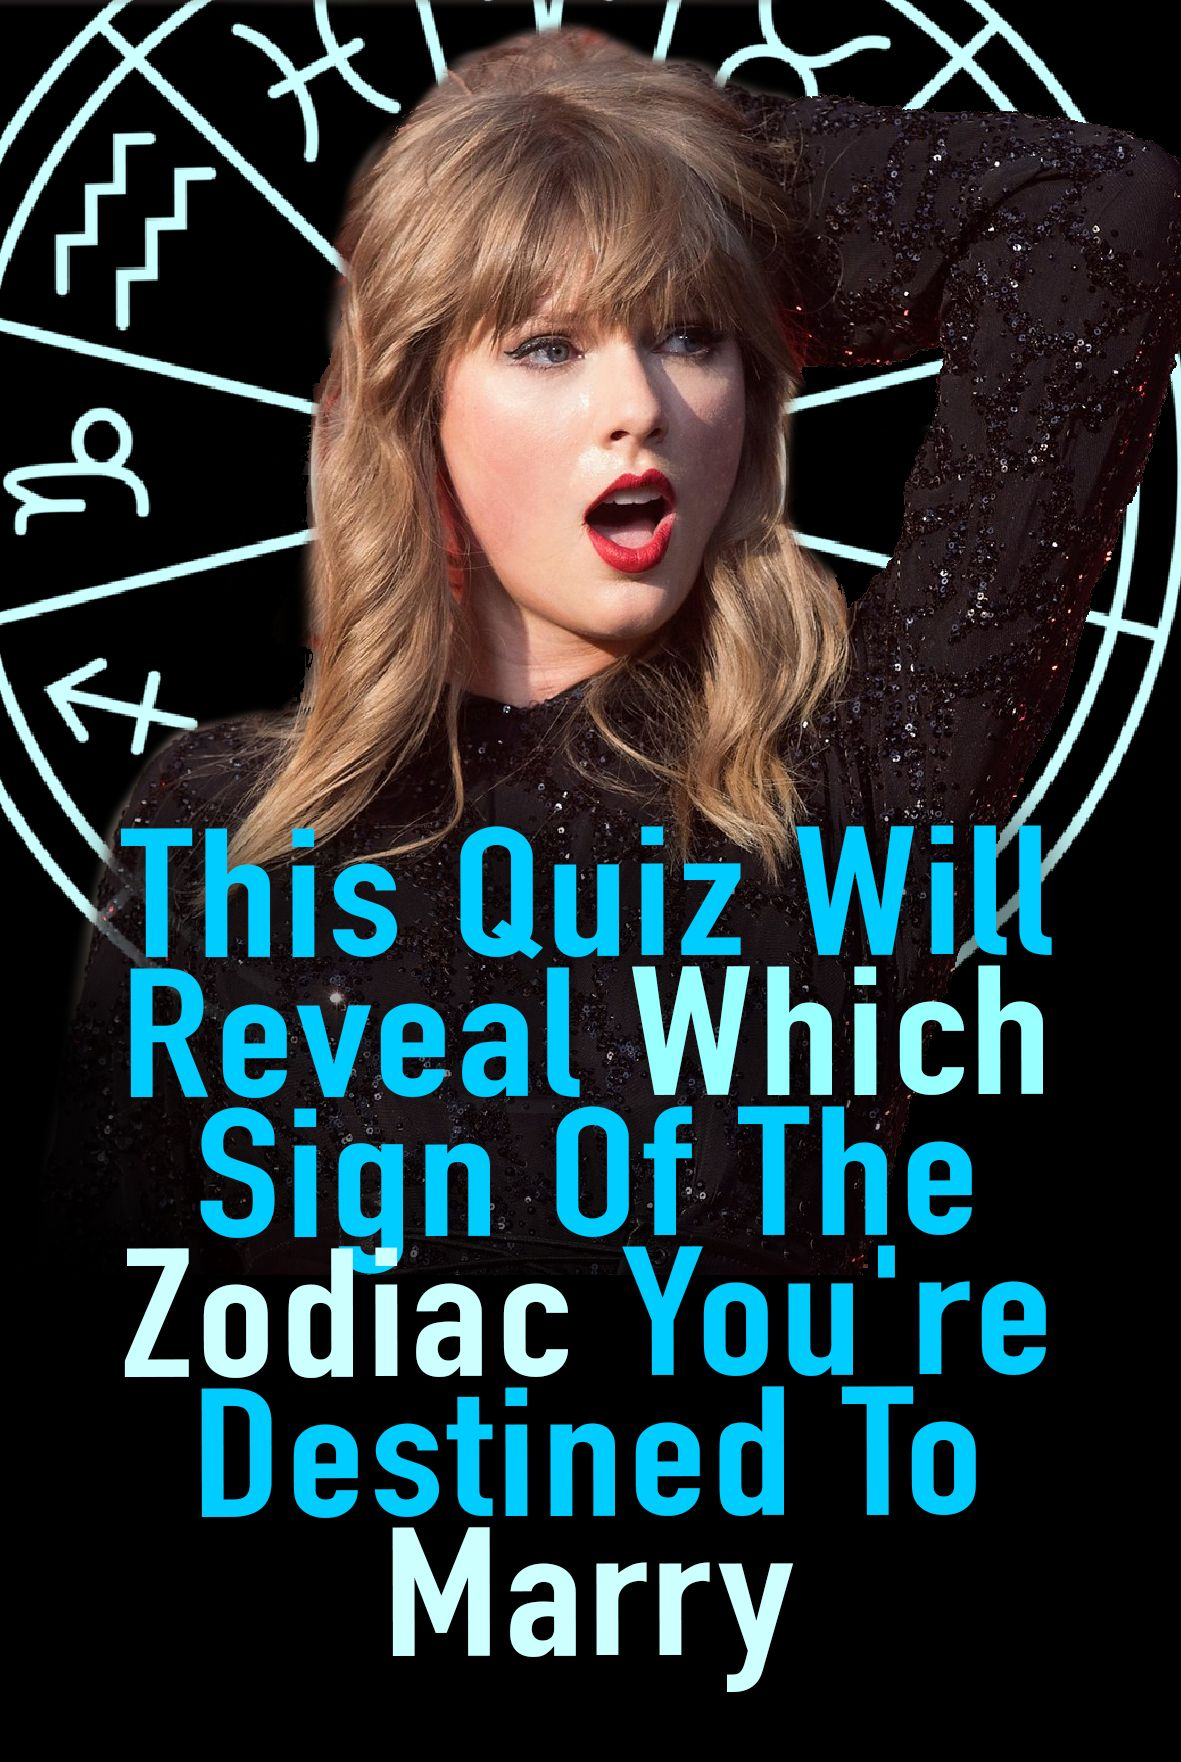 This Quiz Will Reveal Which Sign Of The Zodiac You're Destined To